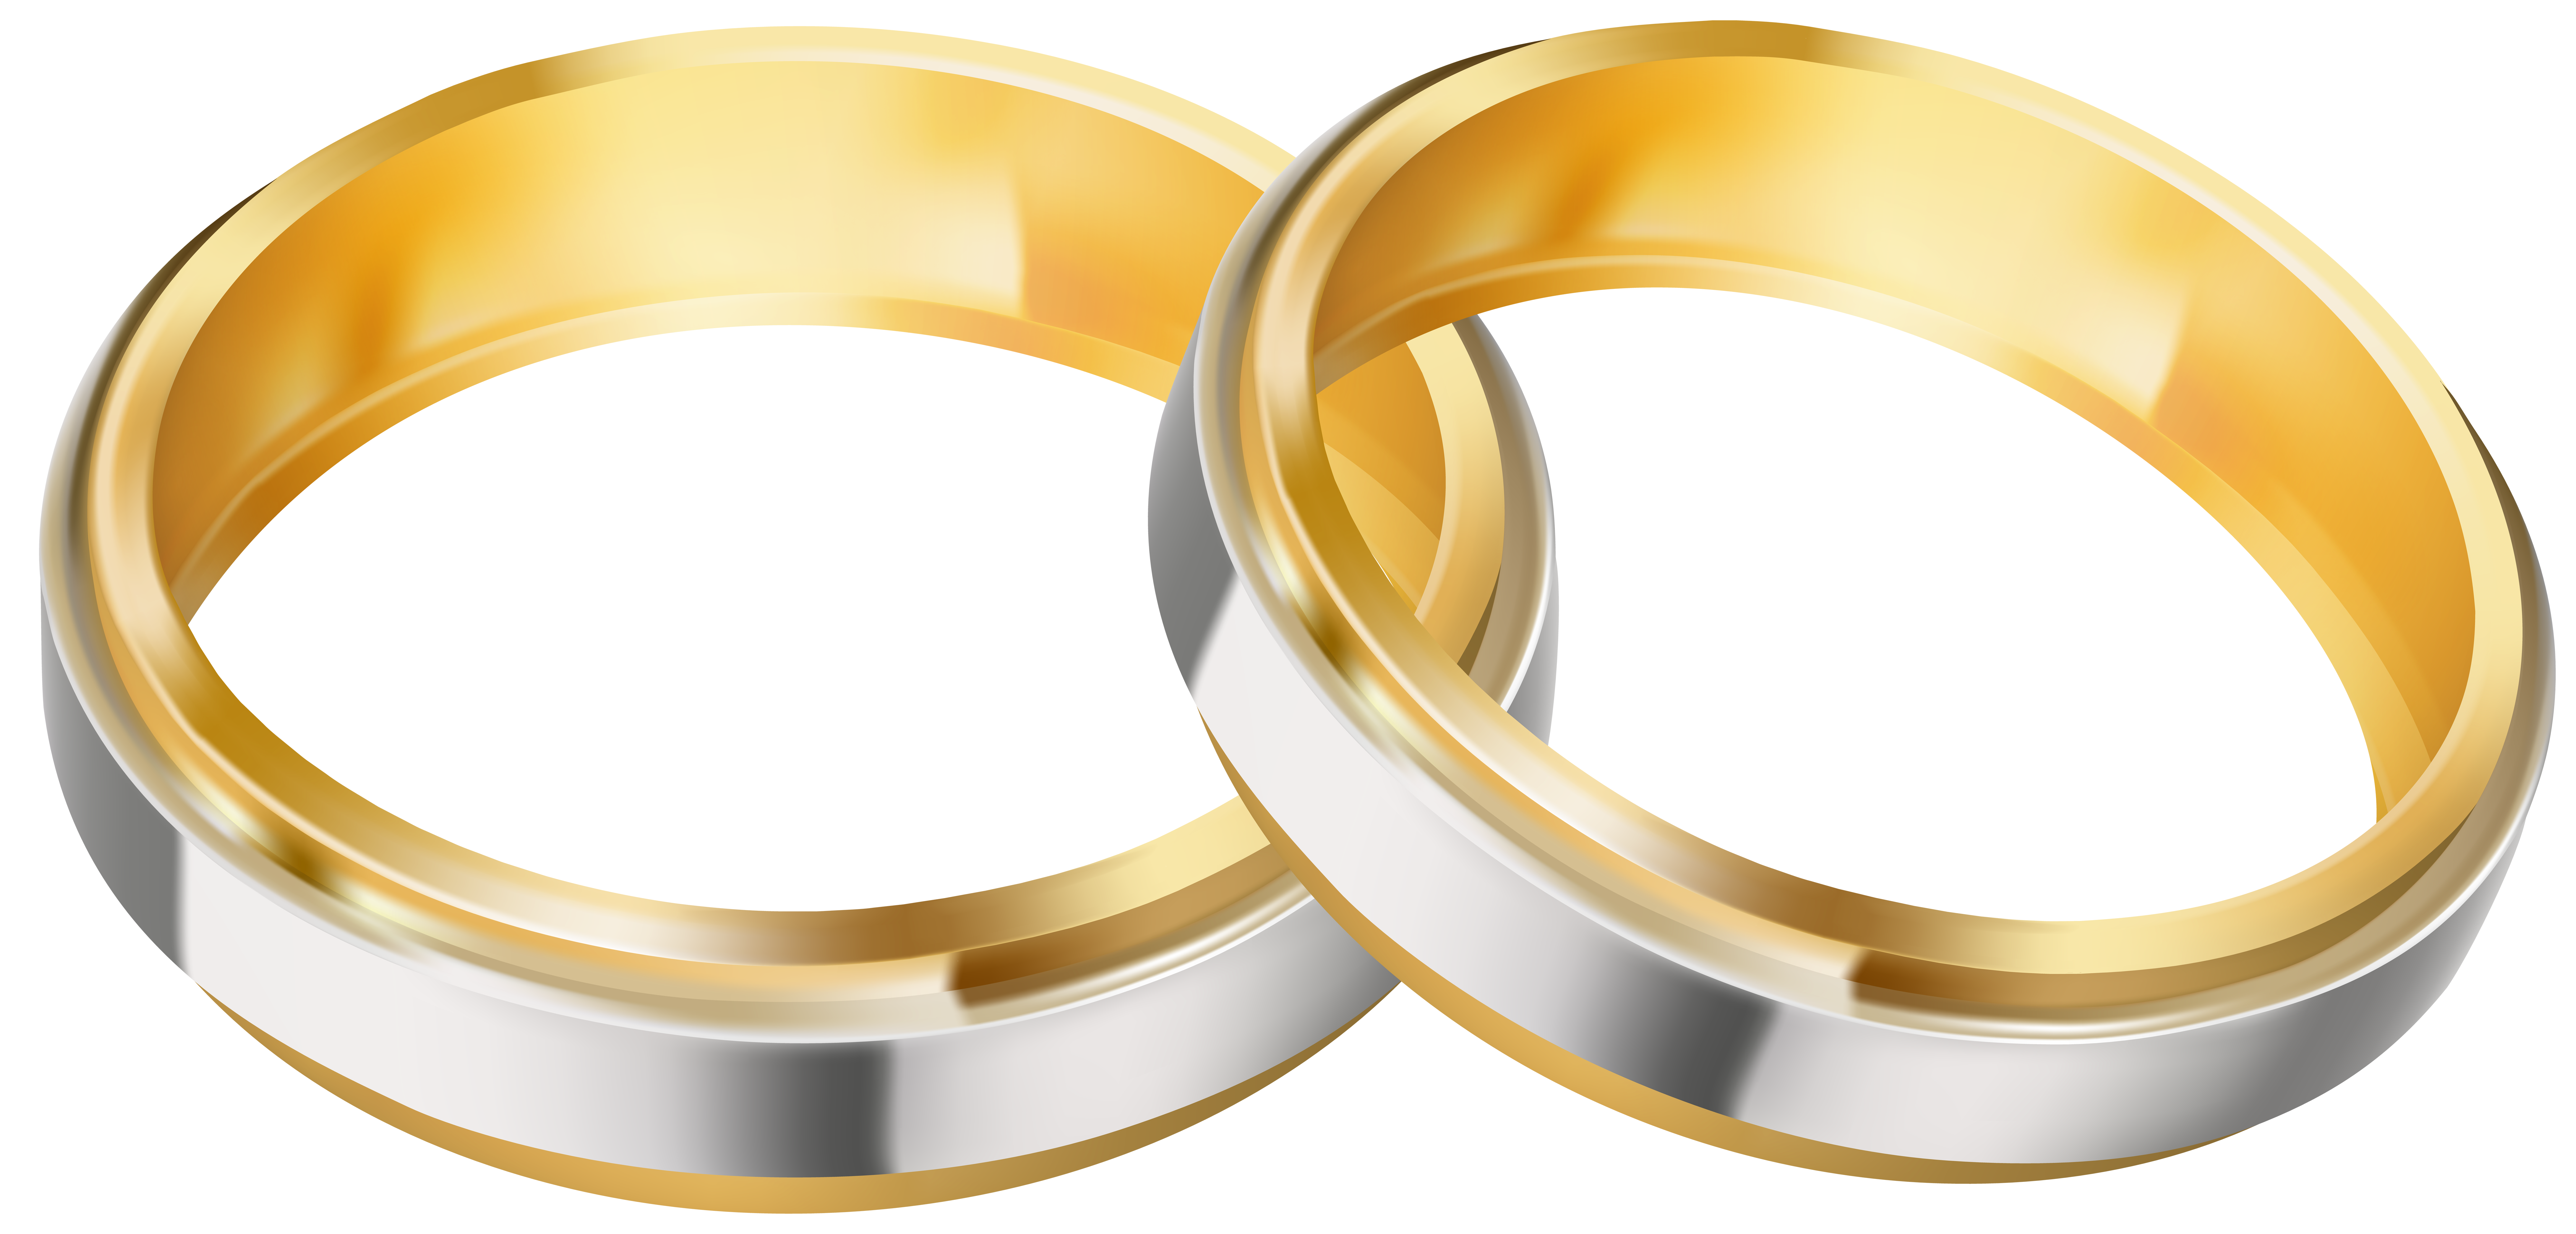 Two Wedding Rings Clipart Image.